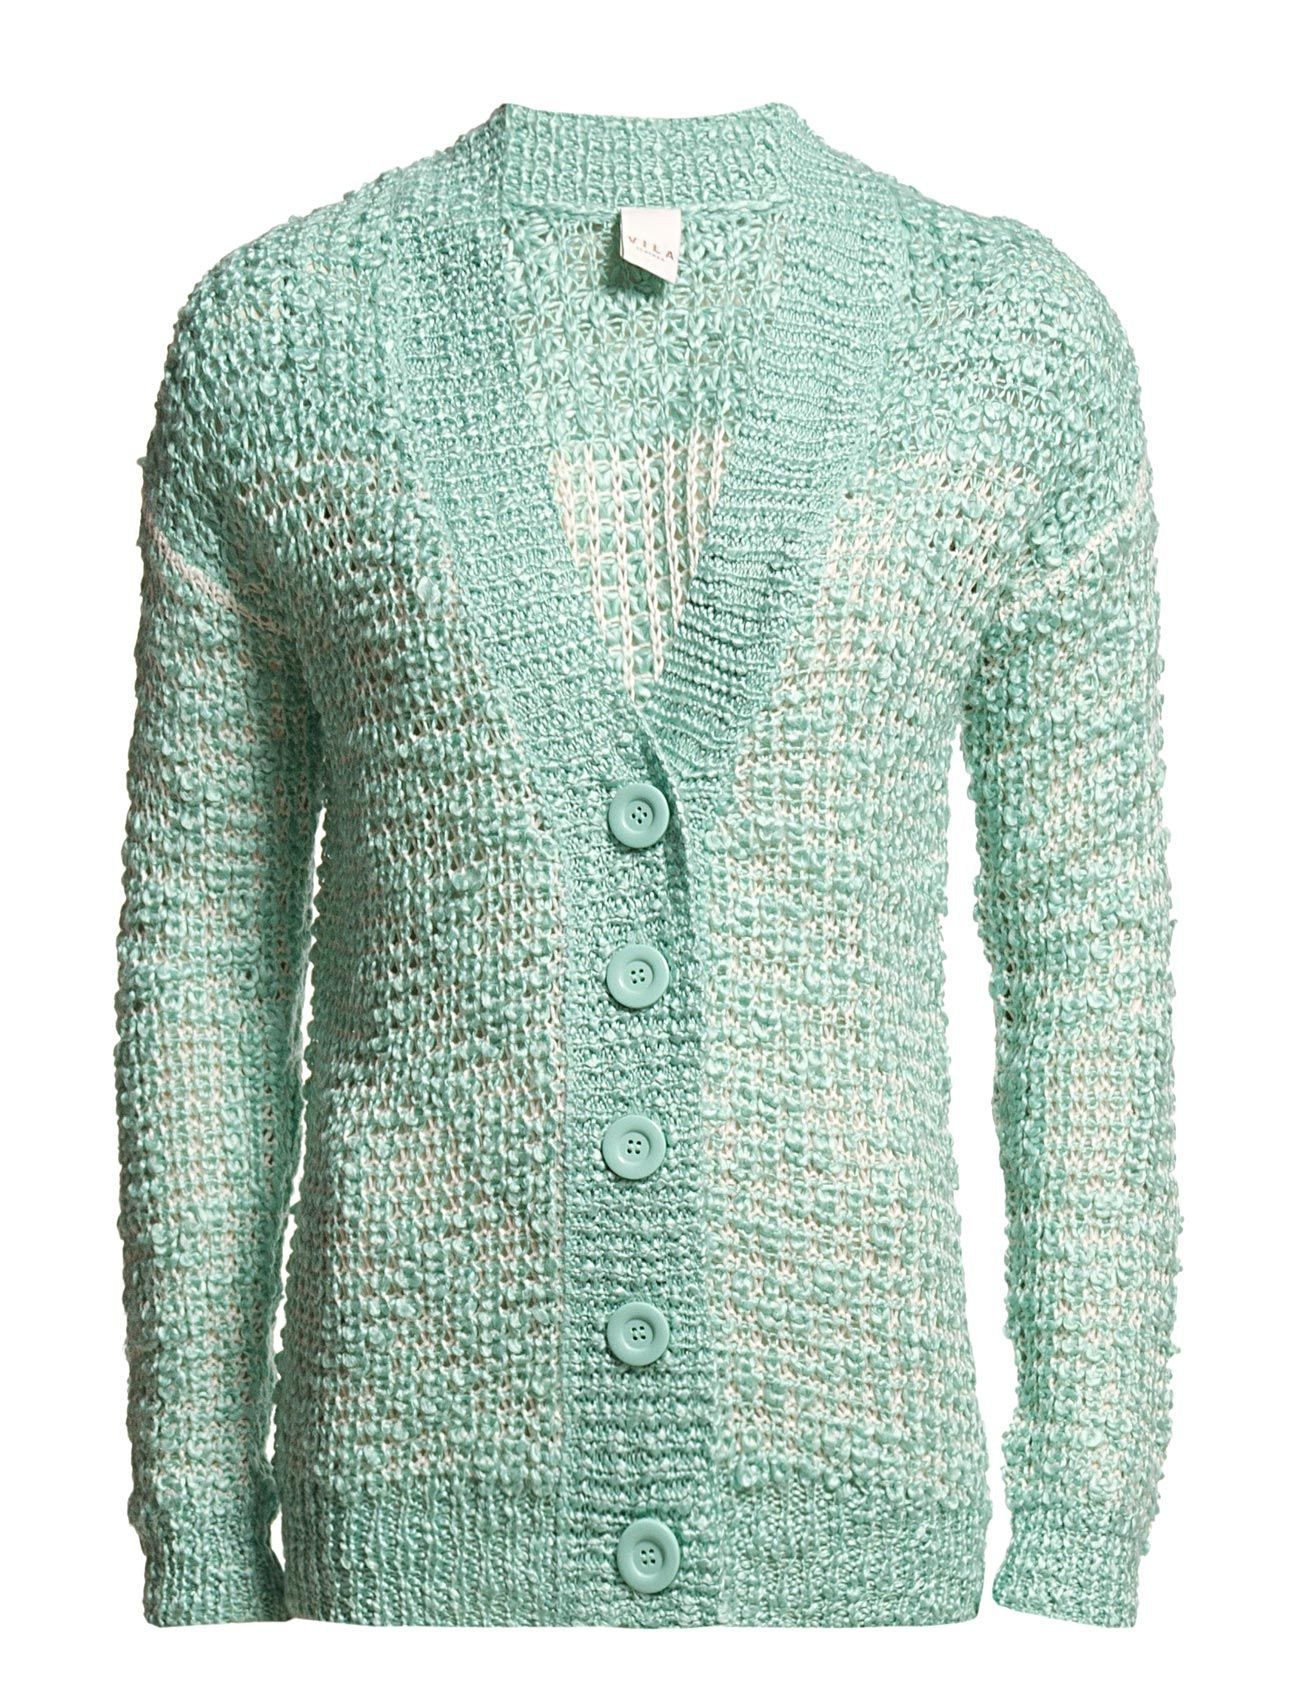 Yarna Knit Cardigan